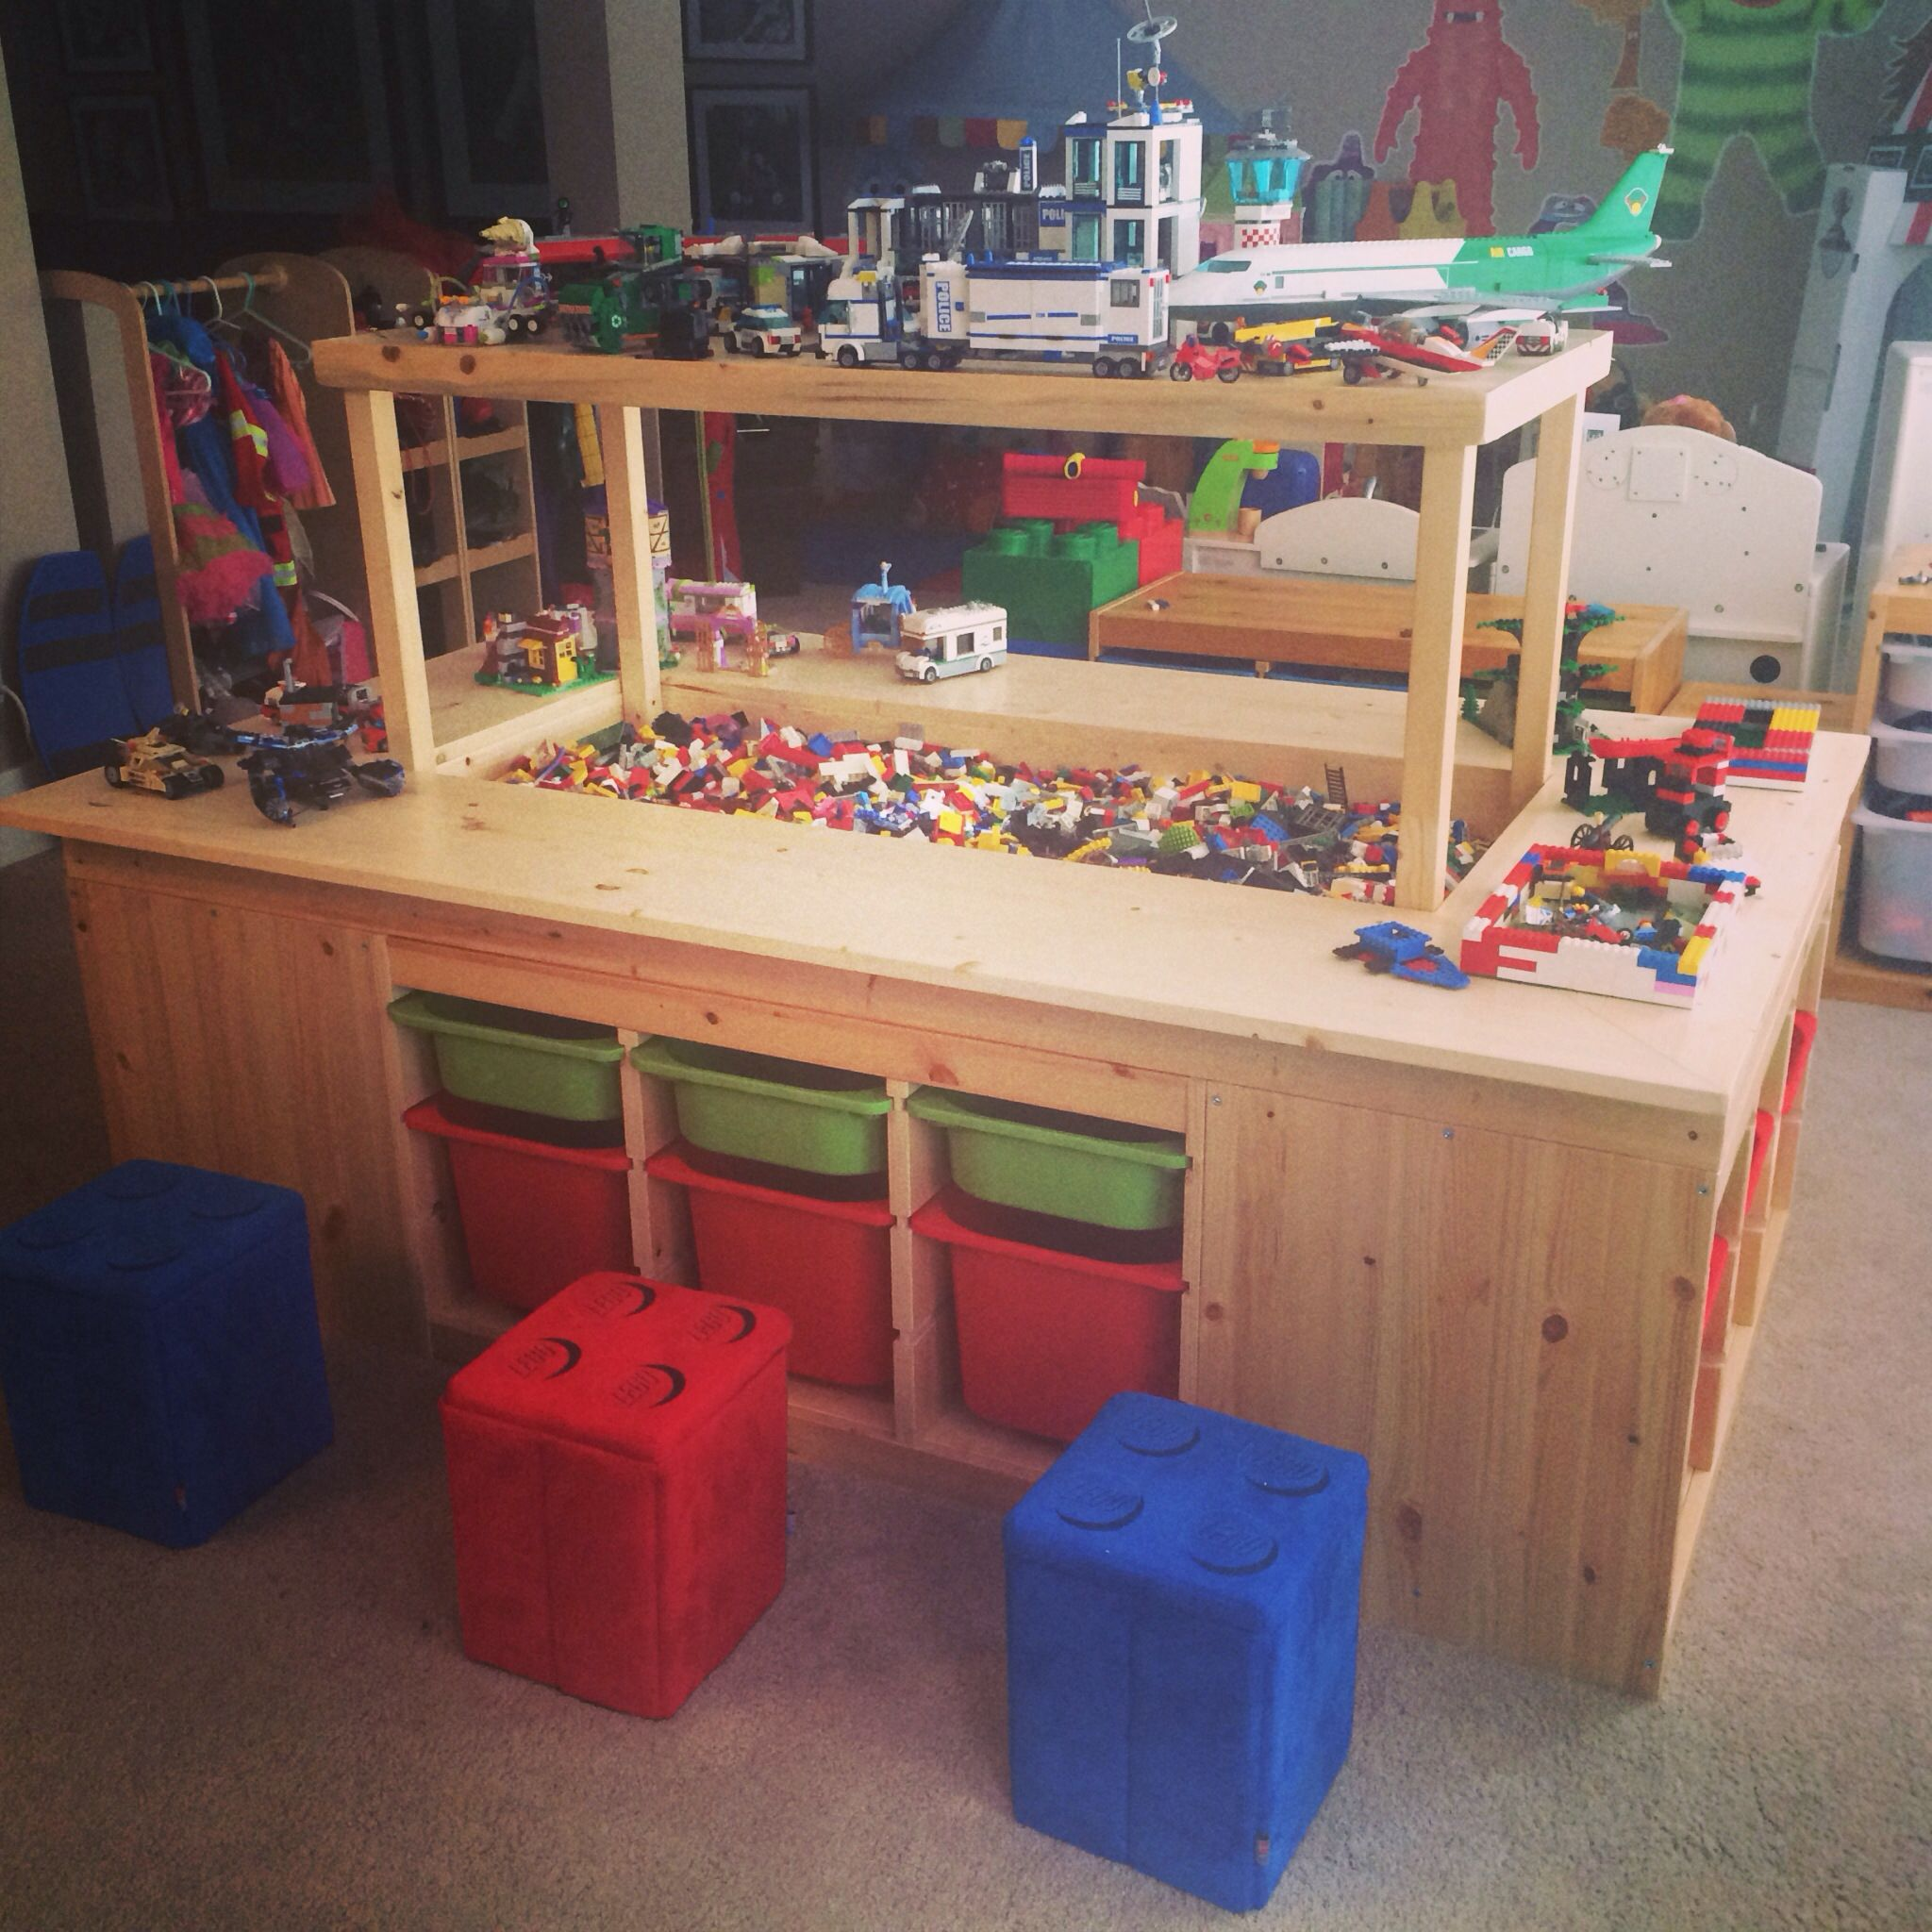 steve built the kids the most amazing lego table legofun. Black Bedroom Furniture Sets. Home Design Ideas